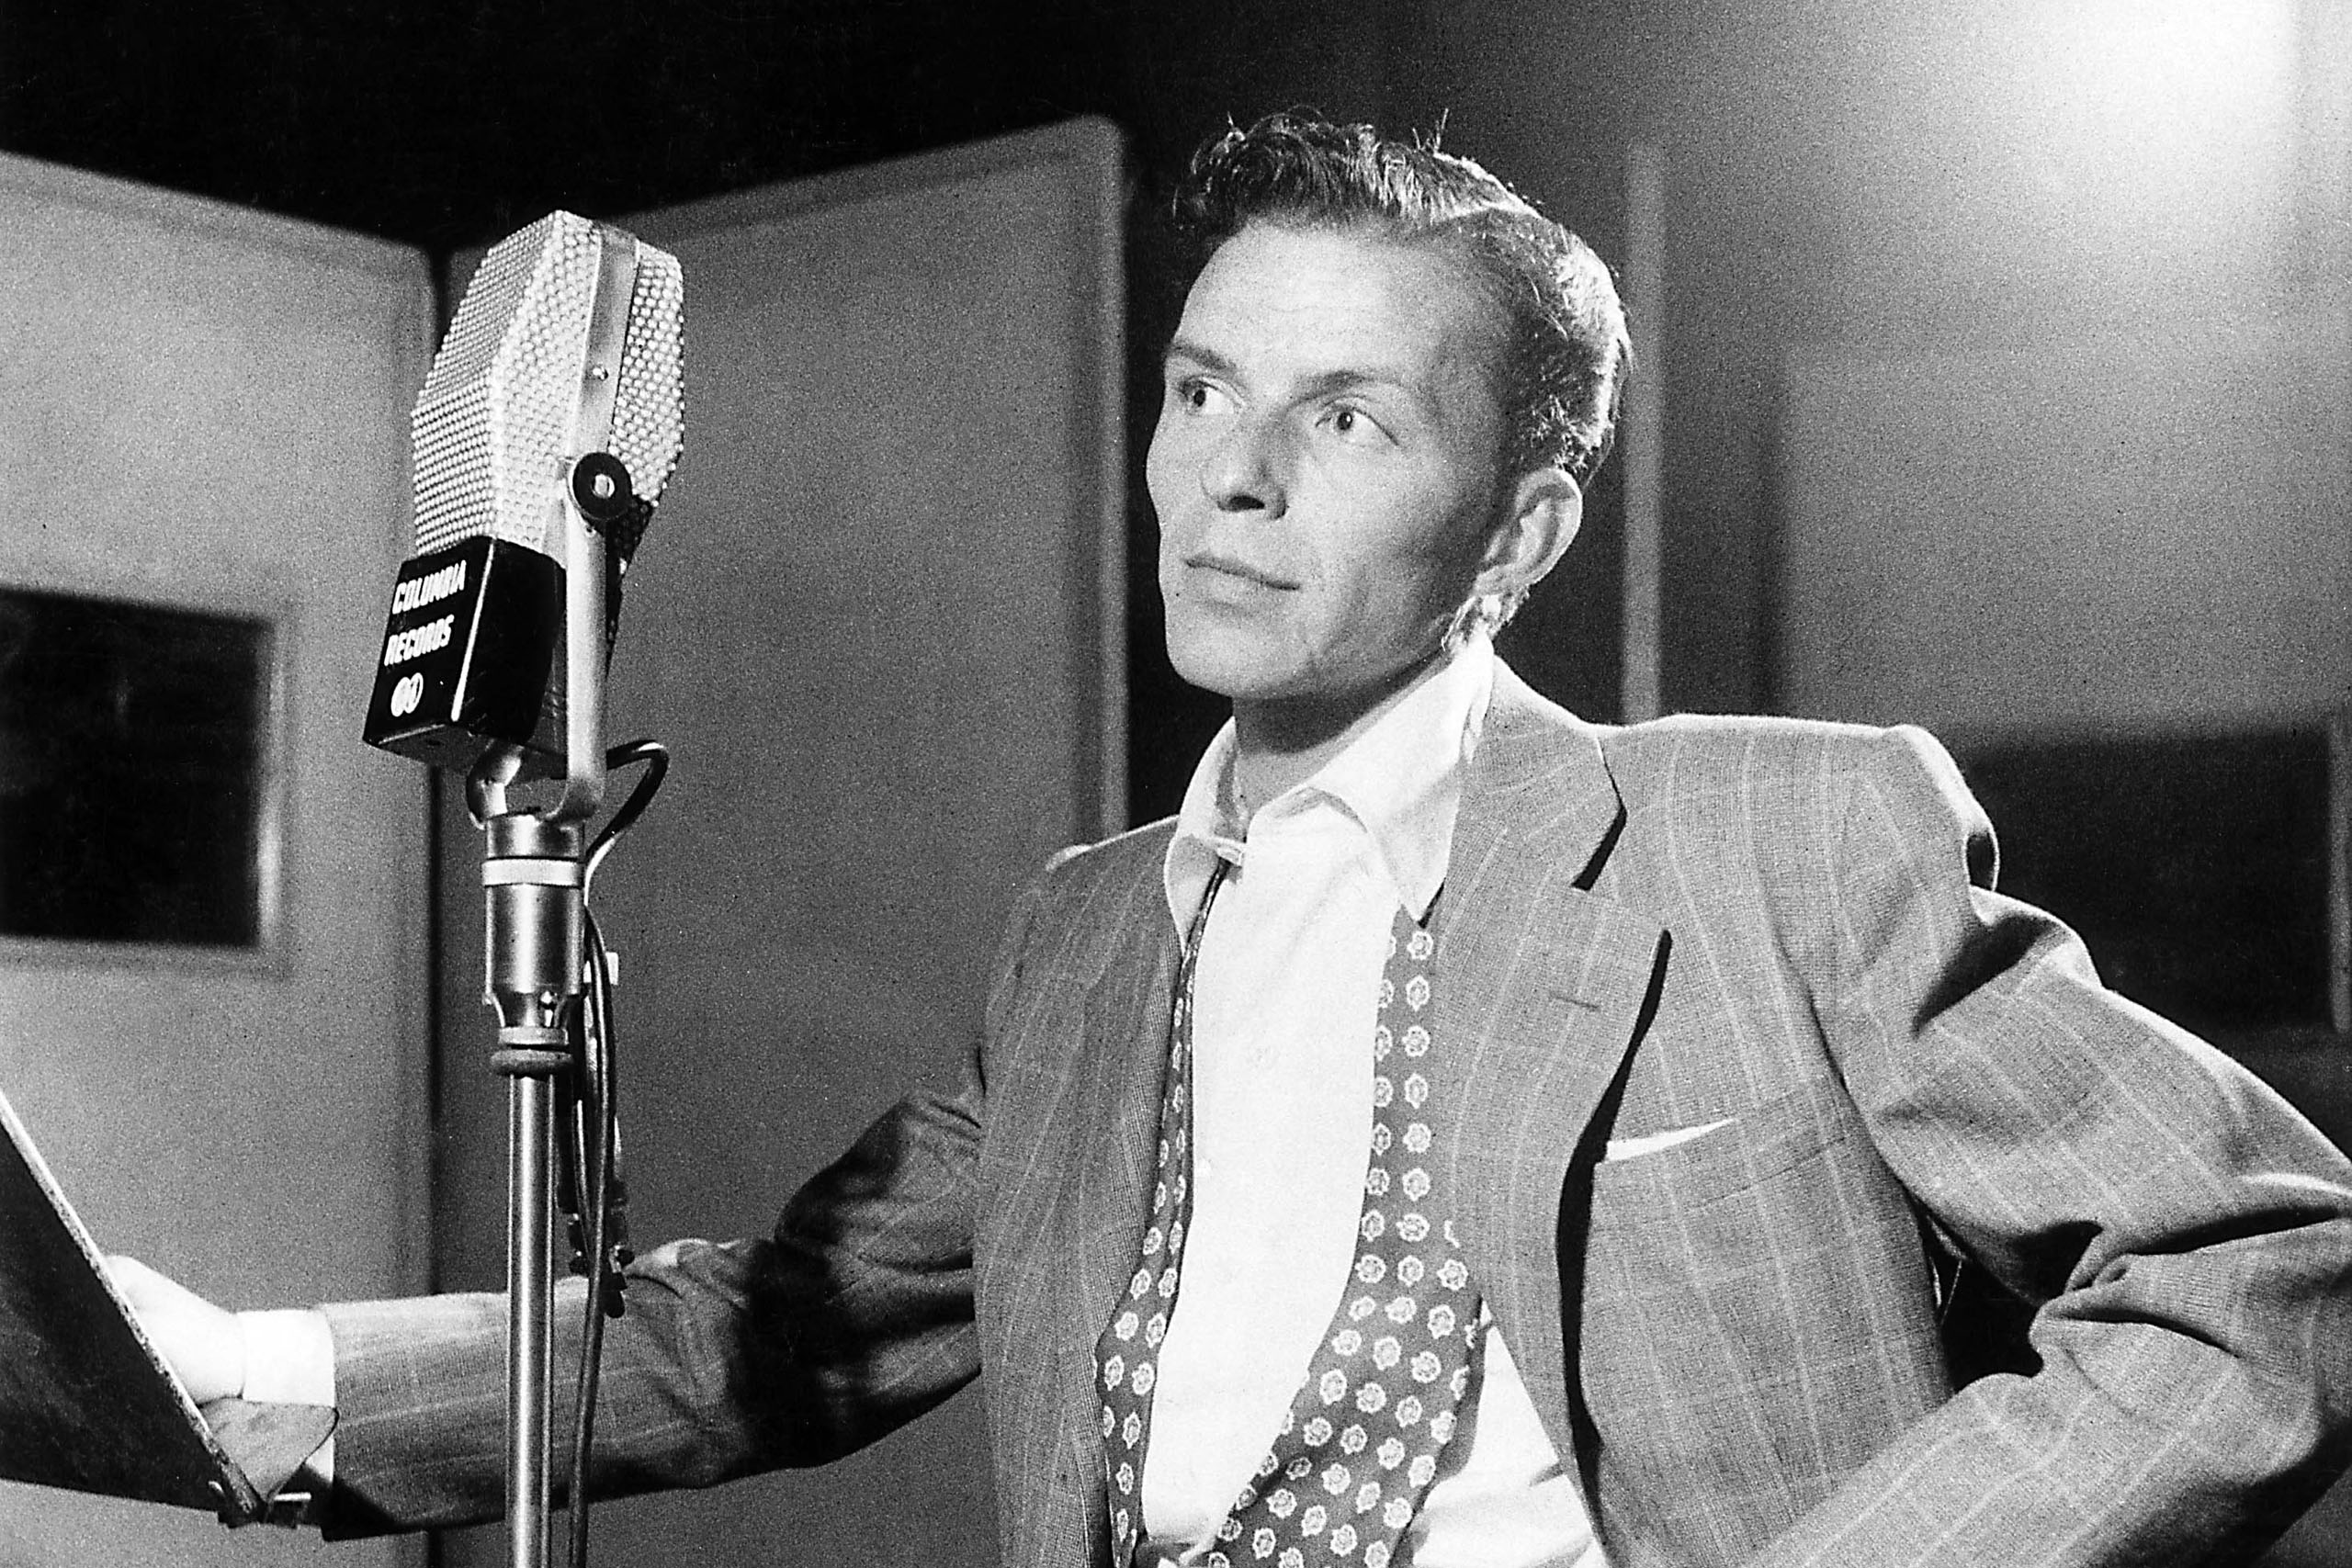 Frank Sinatra next to microphone recording at Columbia Recording studios, Liederkrantz Hall.